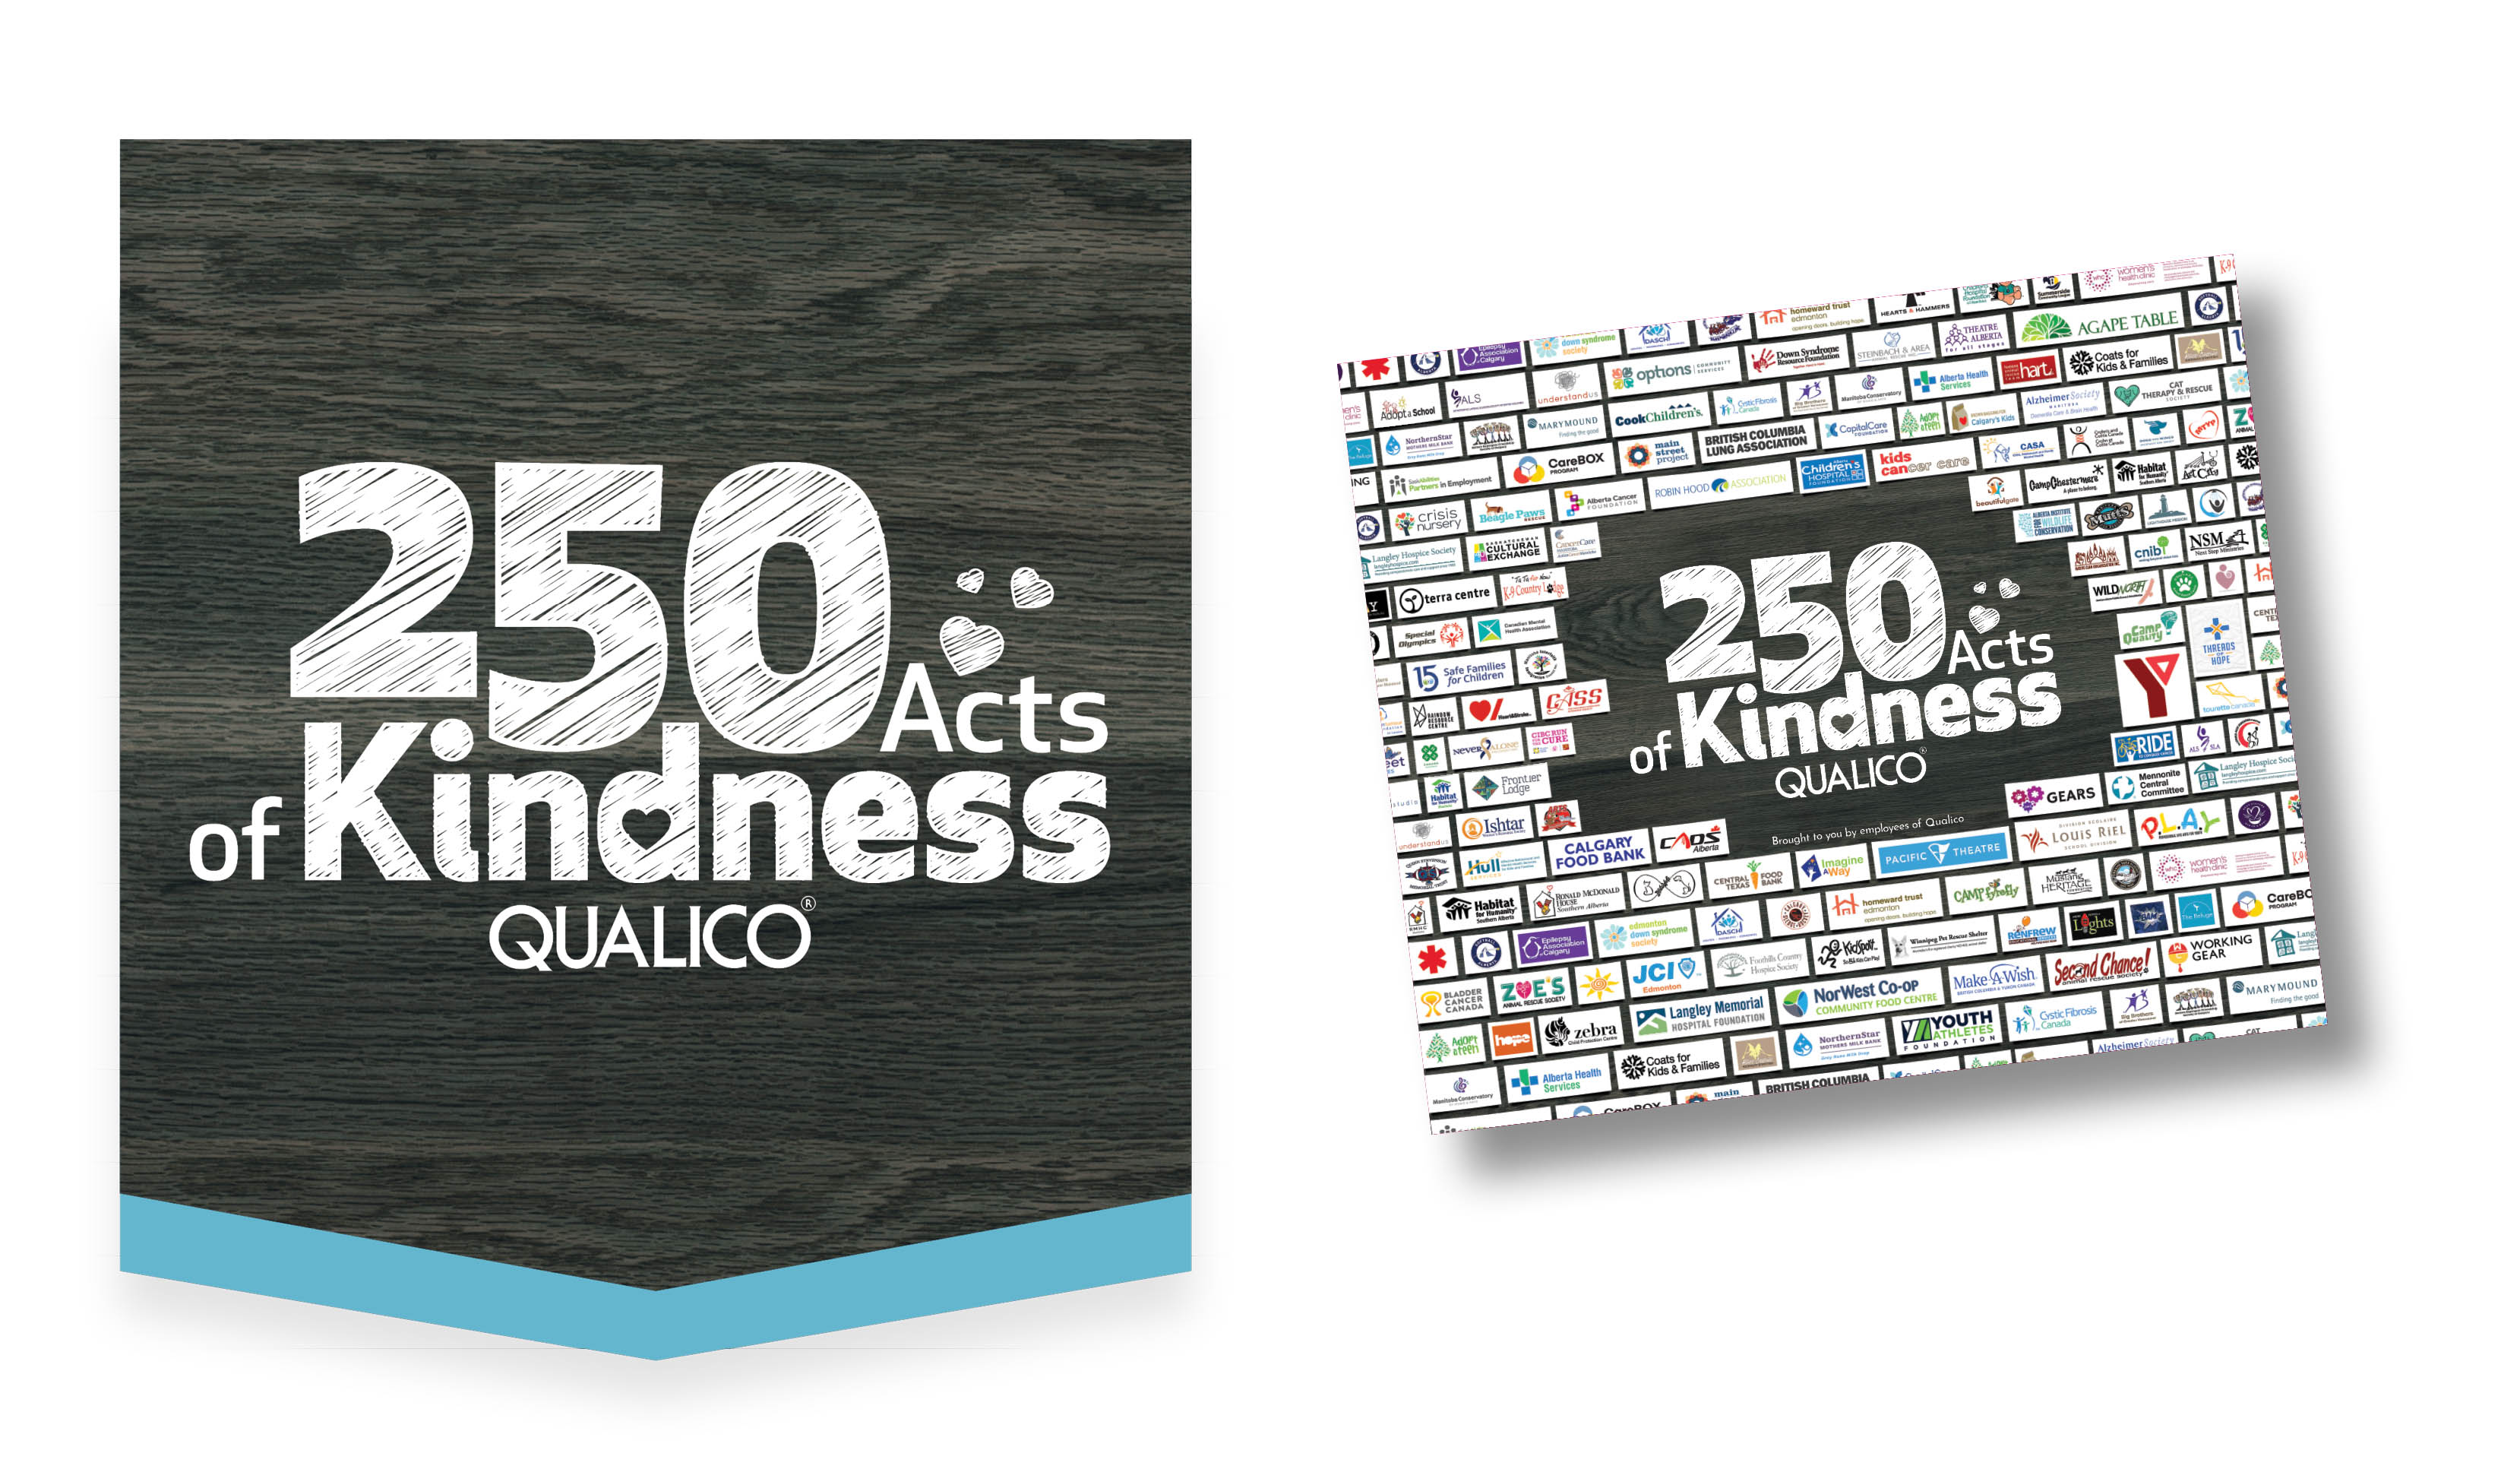 Acts of Kindness | Qualico | 250 Donations Book Cover